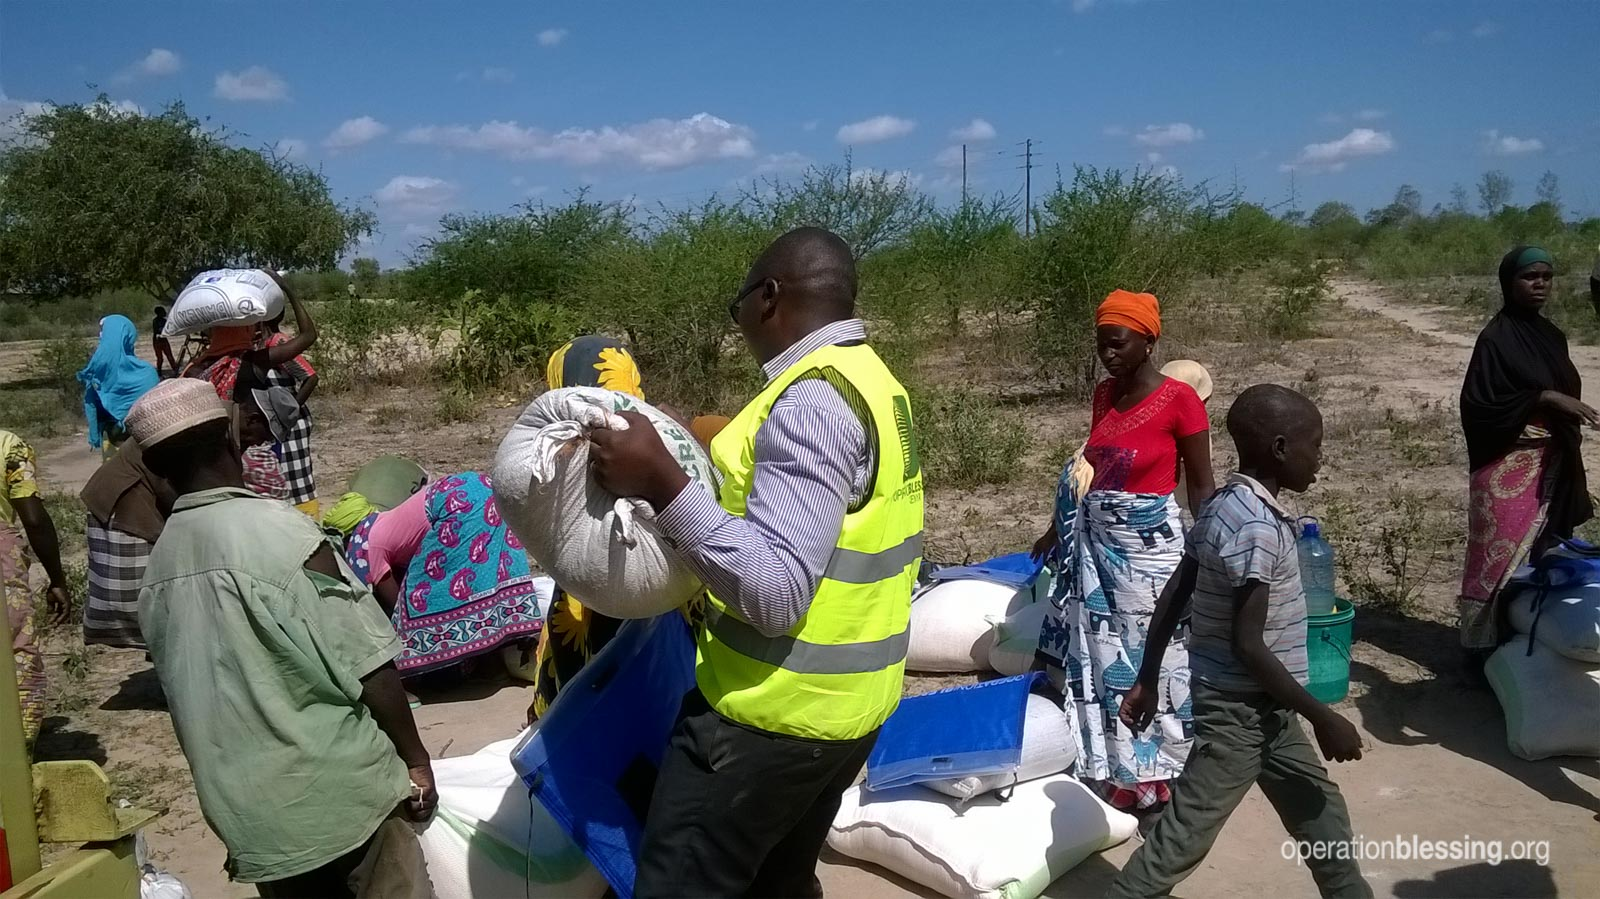 Families in Kilifi receive help from Operation Blessing.